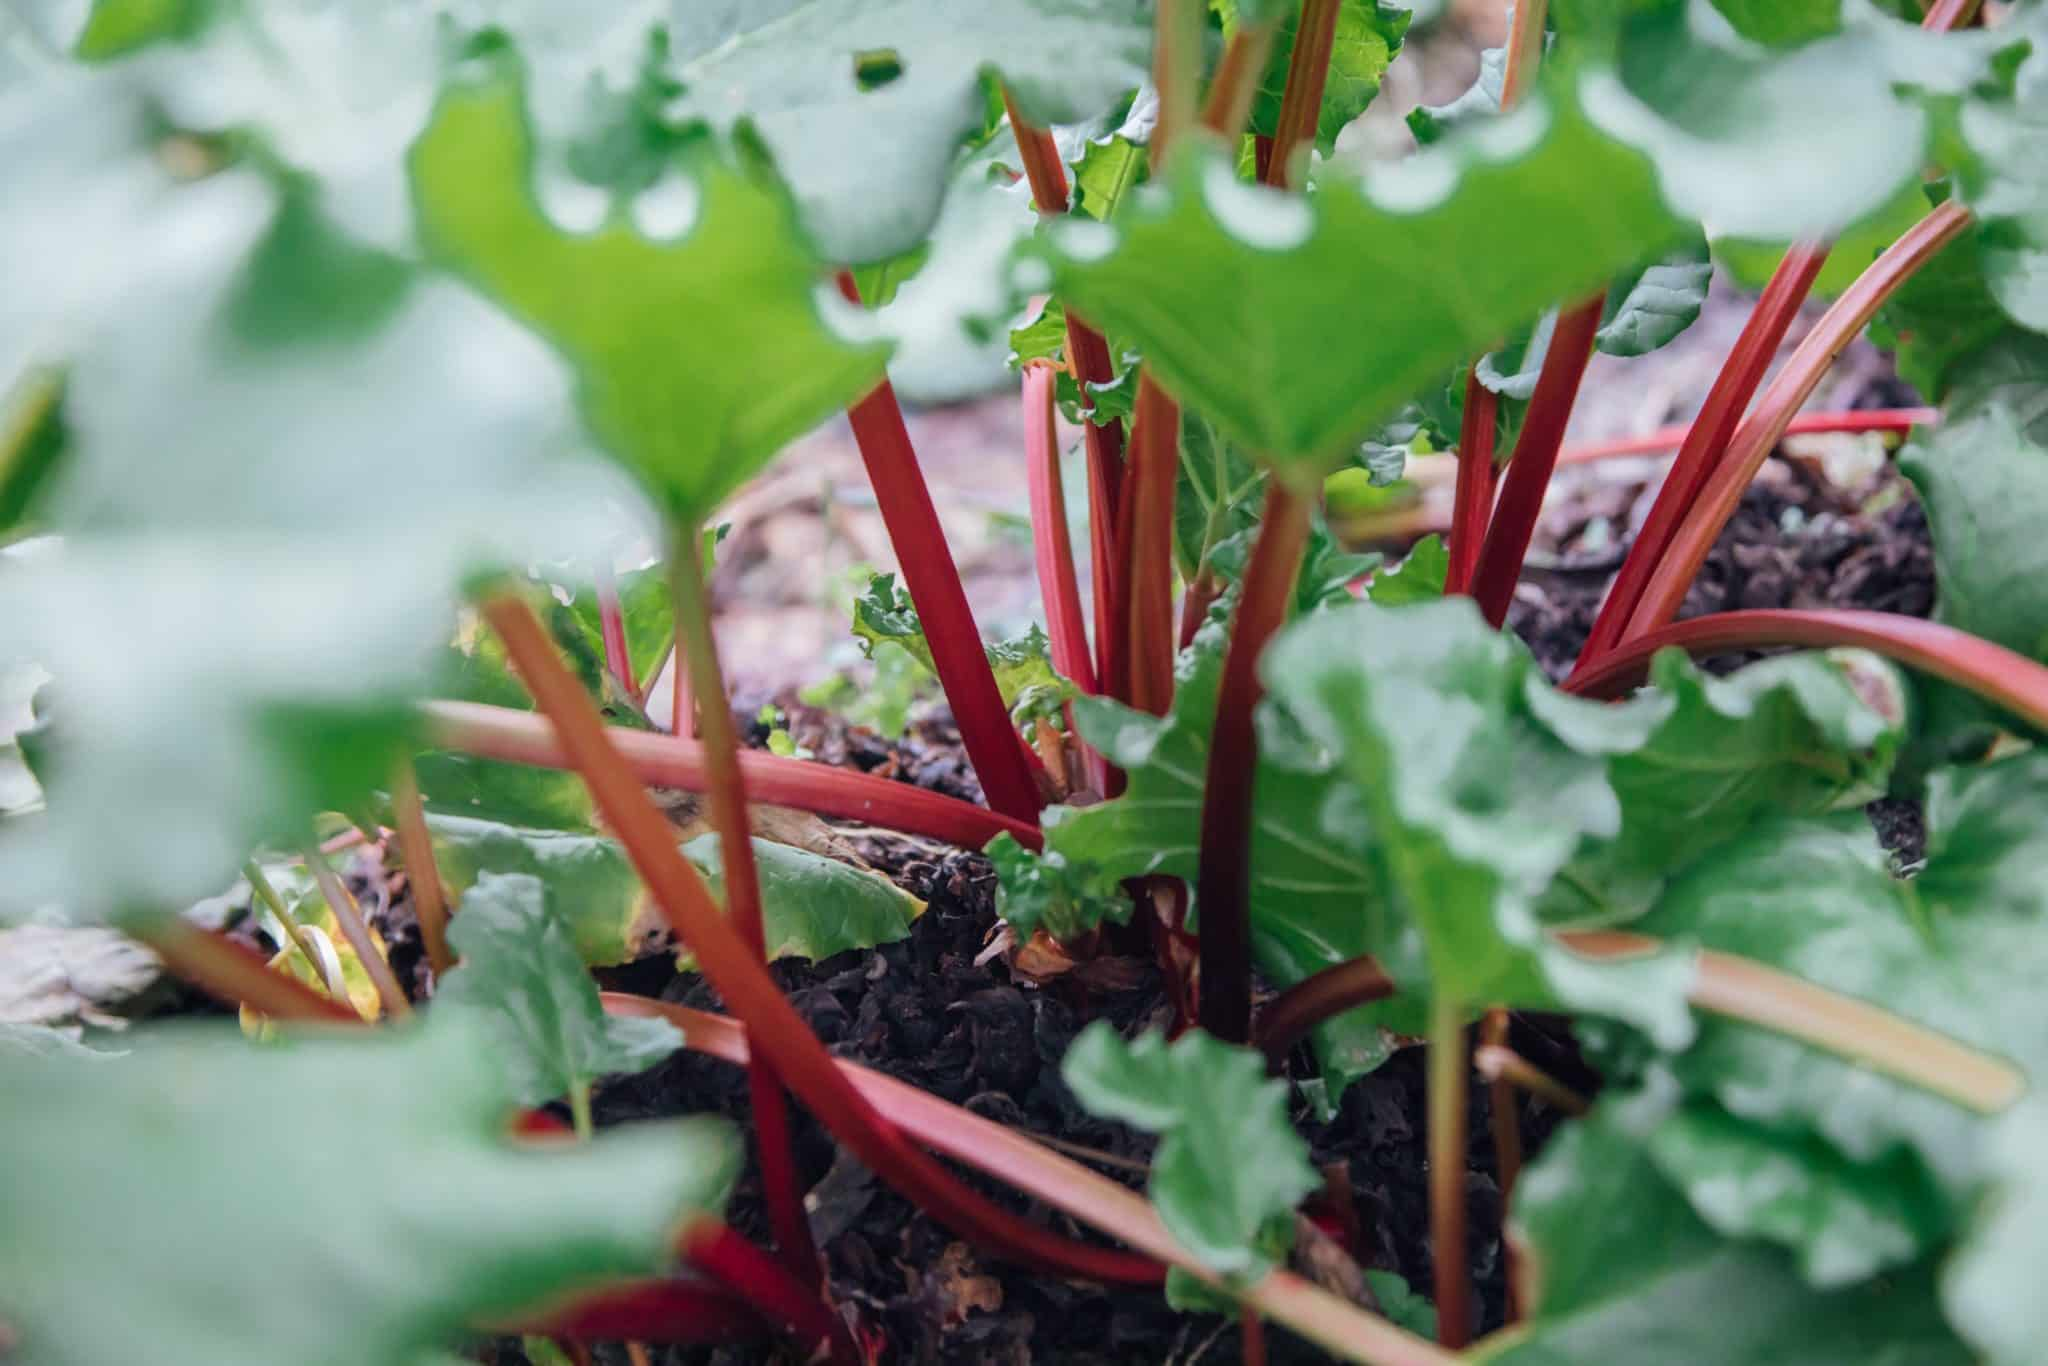 Sticks of rhubarb growing in the ground